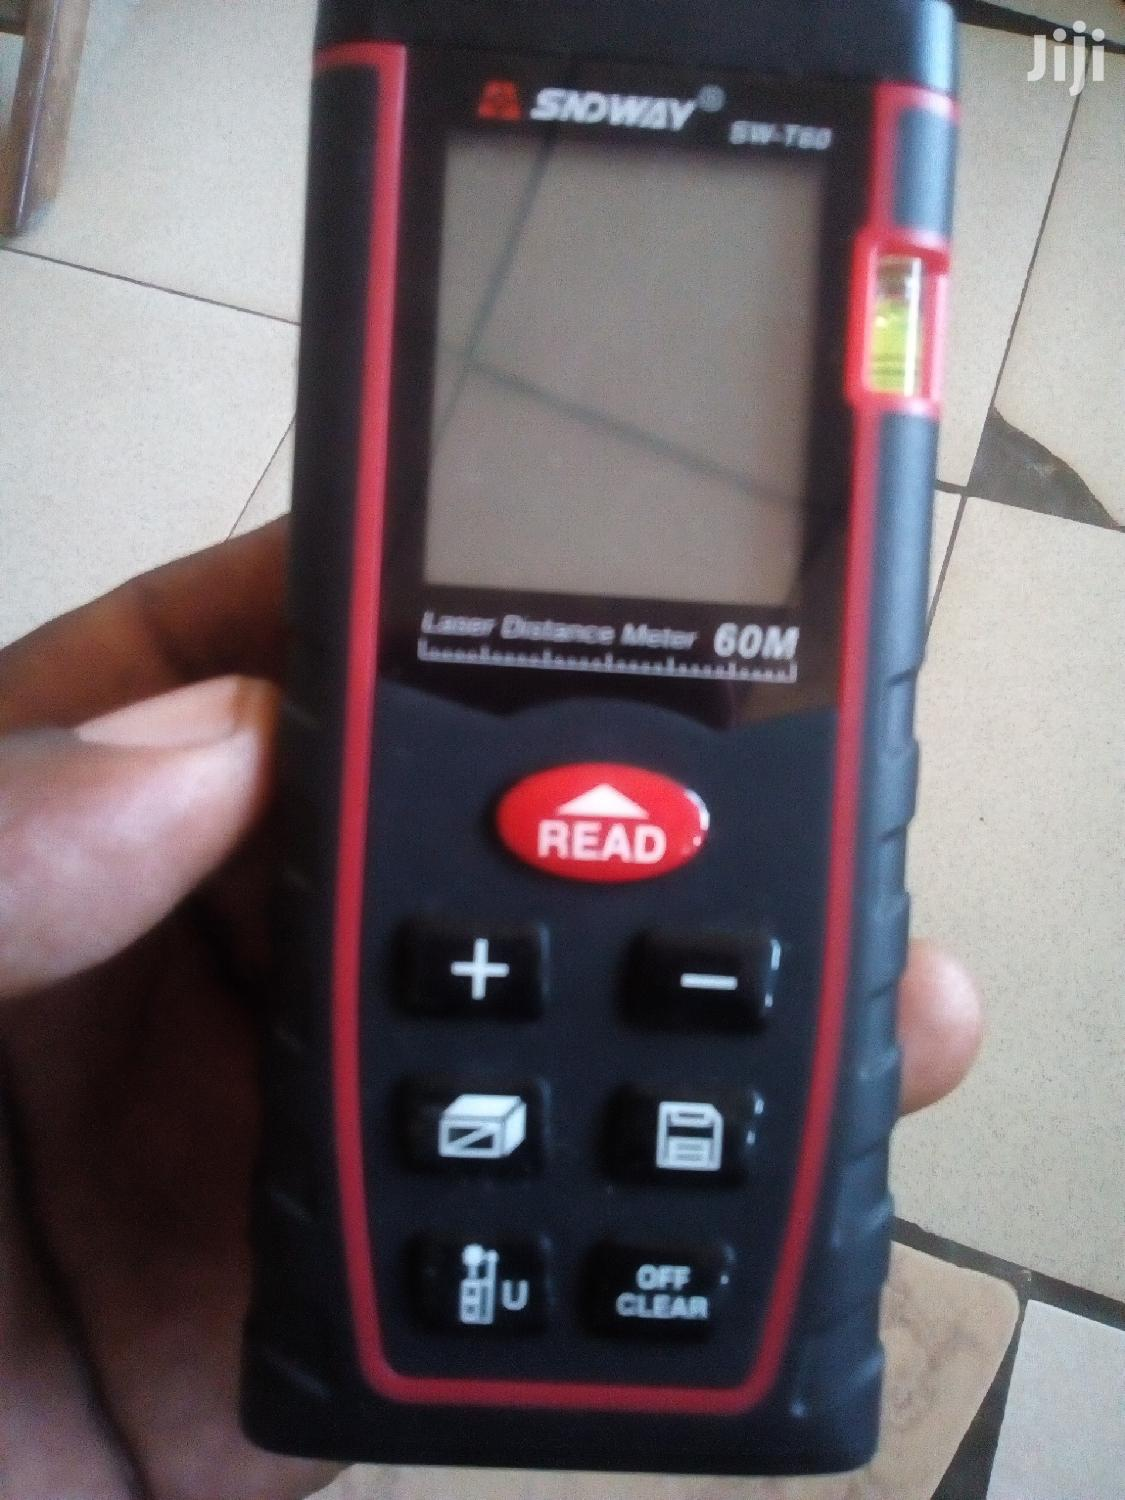 Sndway Sw-t60 Laser Distance Meter 60M   Measuring & Layout Tools for sale in Dansoman, Greater Accra, Ghana